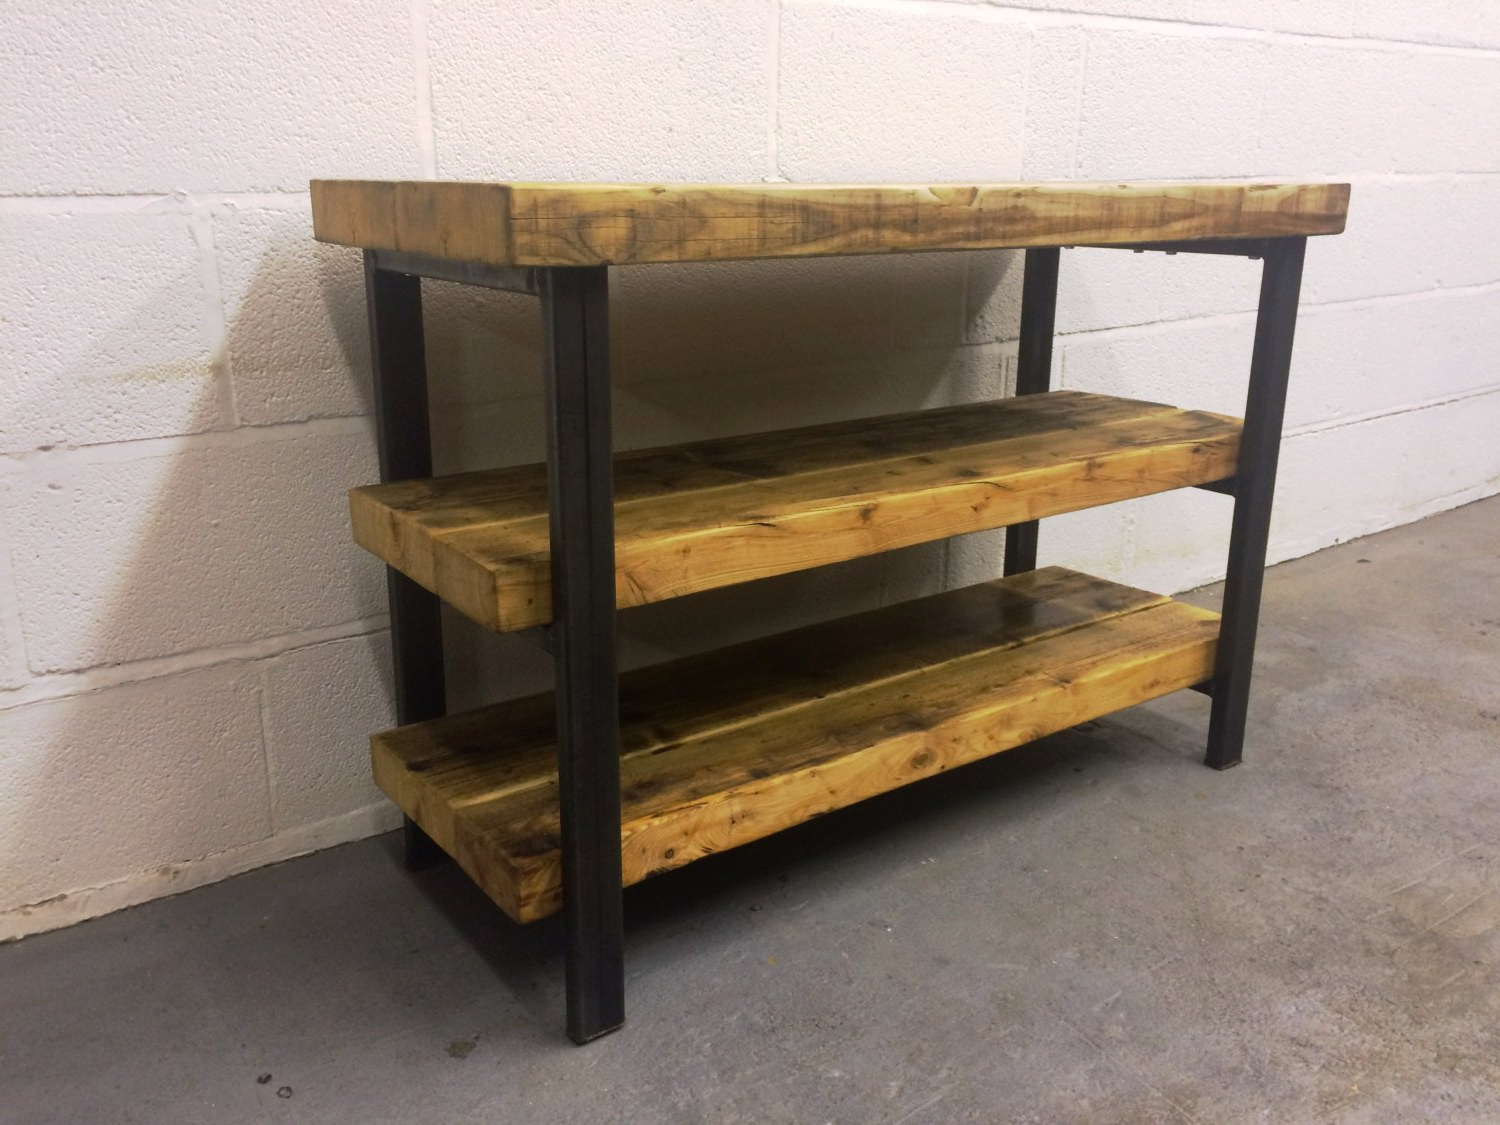 Etsy Pertaining To Industrial Metal Tv Stands (View 1 of 20)